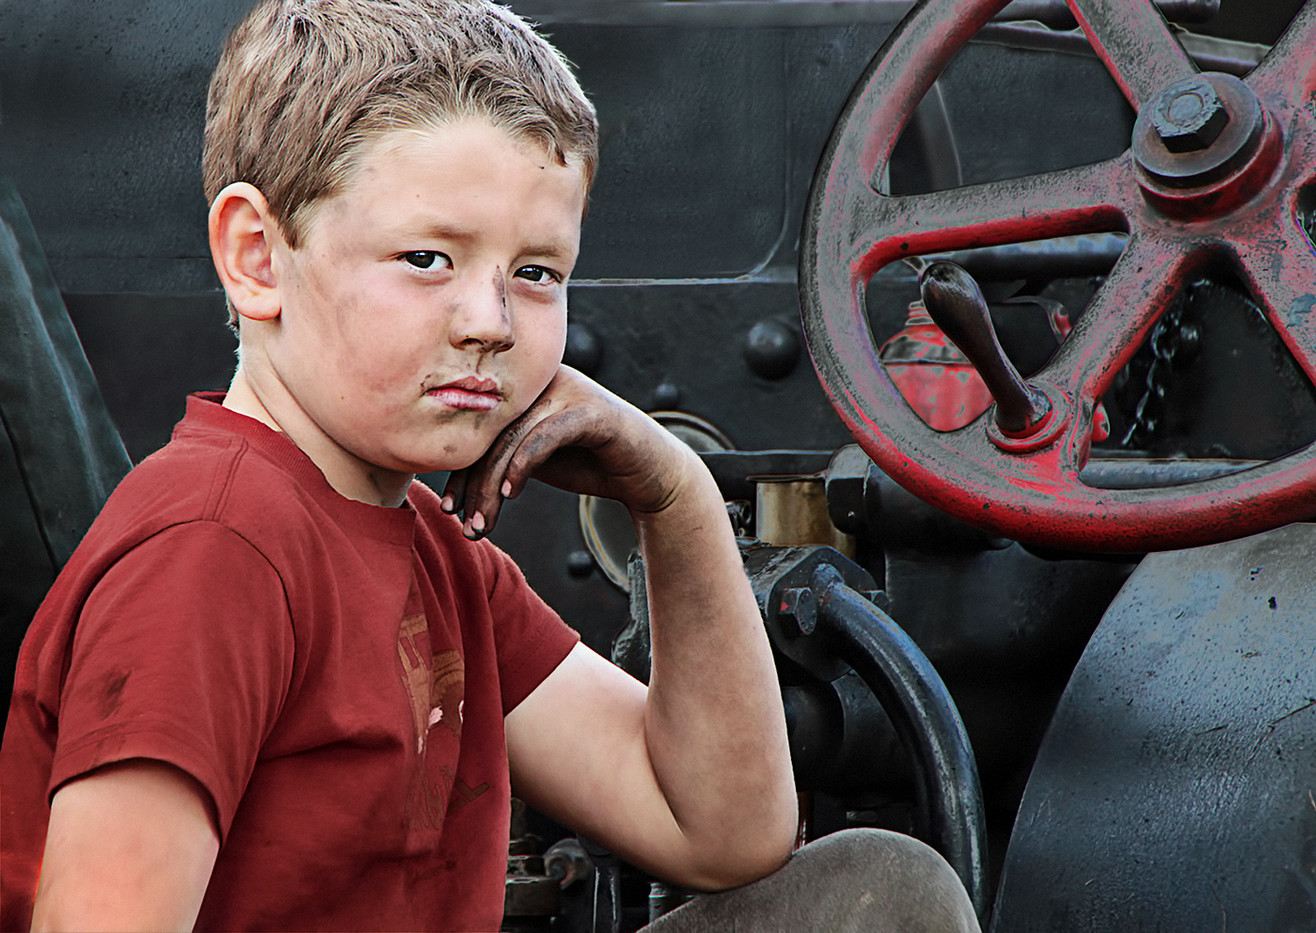 20 FED UP AT THE STEAM FAIR by Pam Sherren